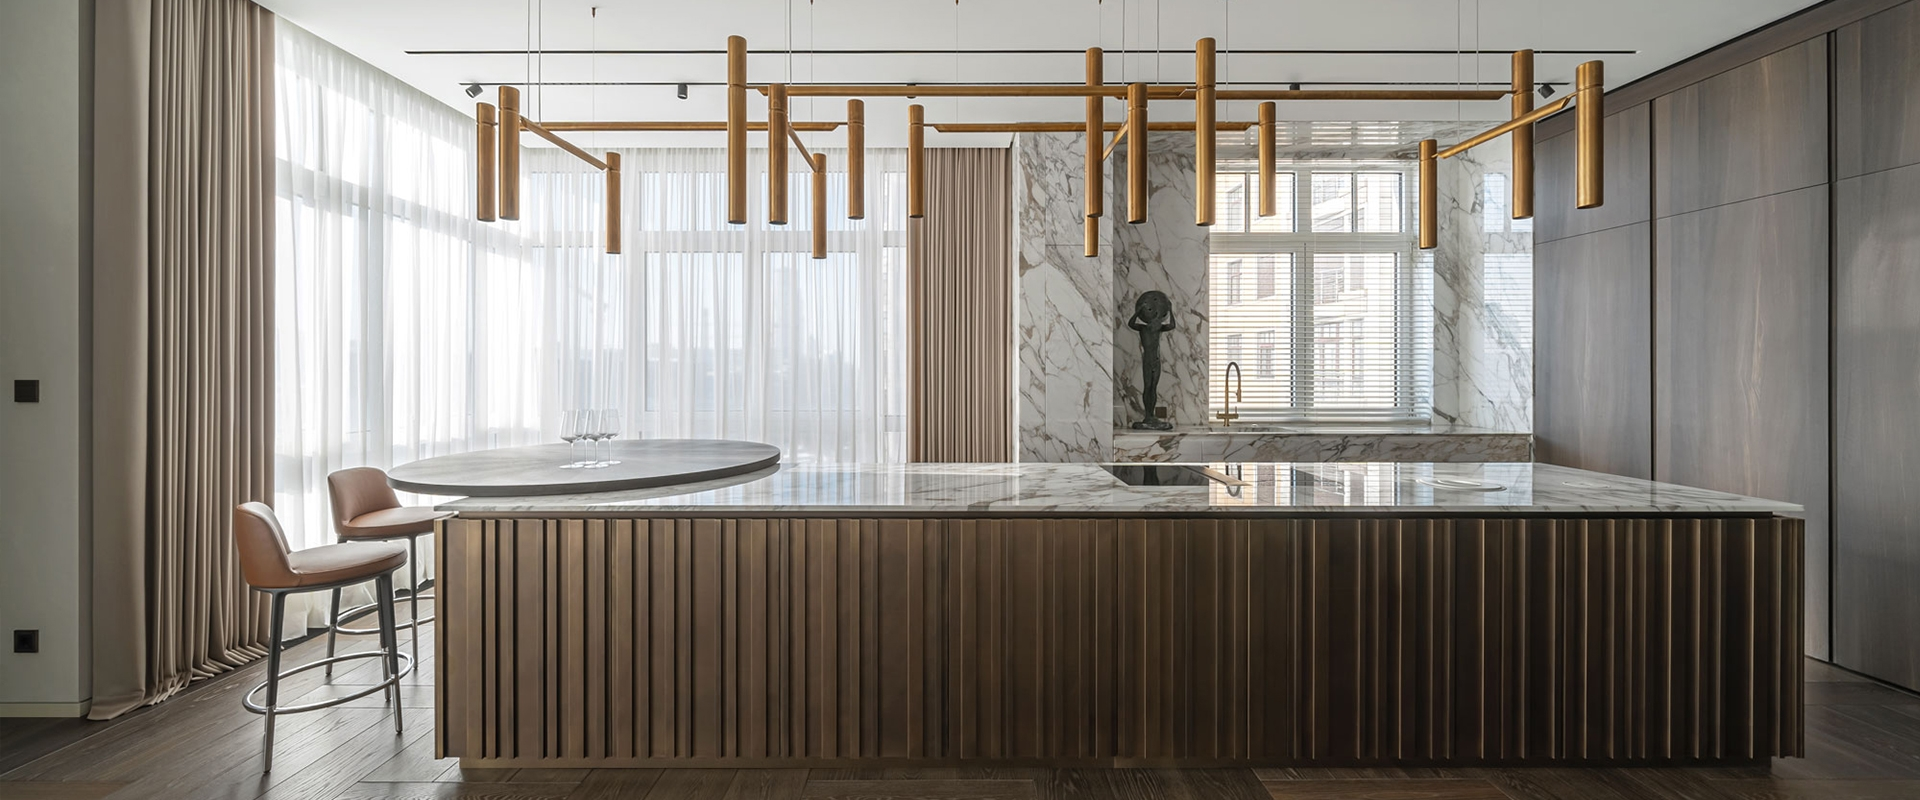 Architectural excellence in the interior design of Grand Apartment